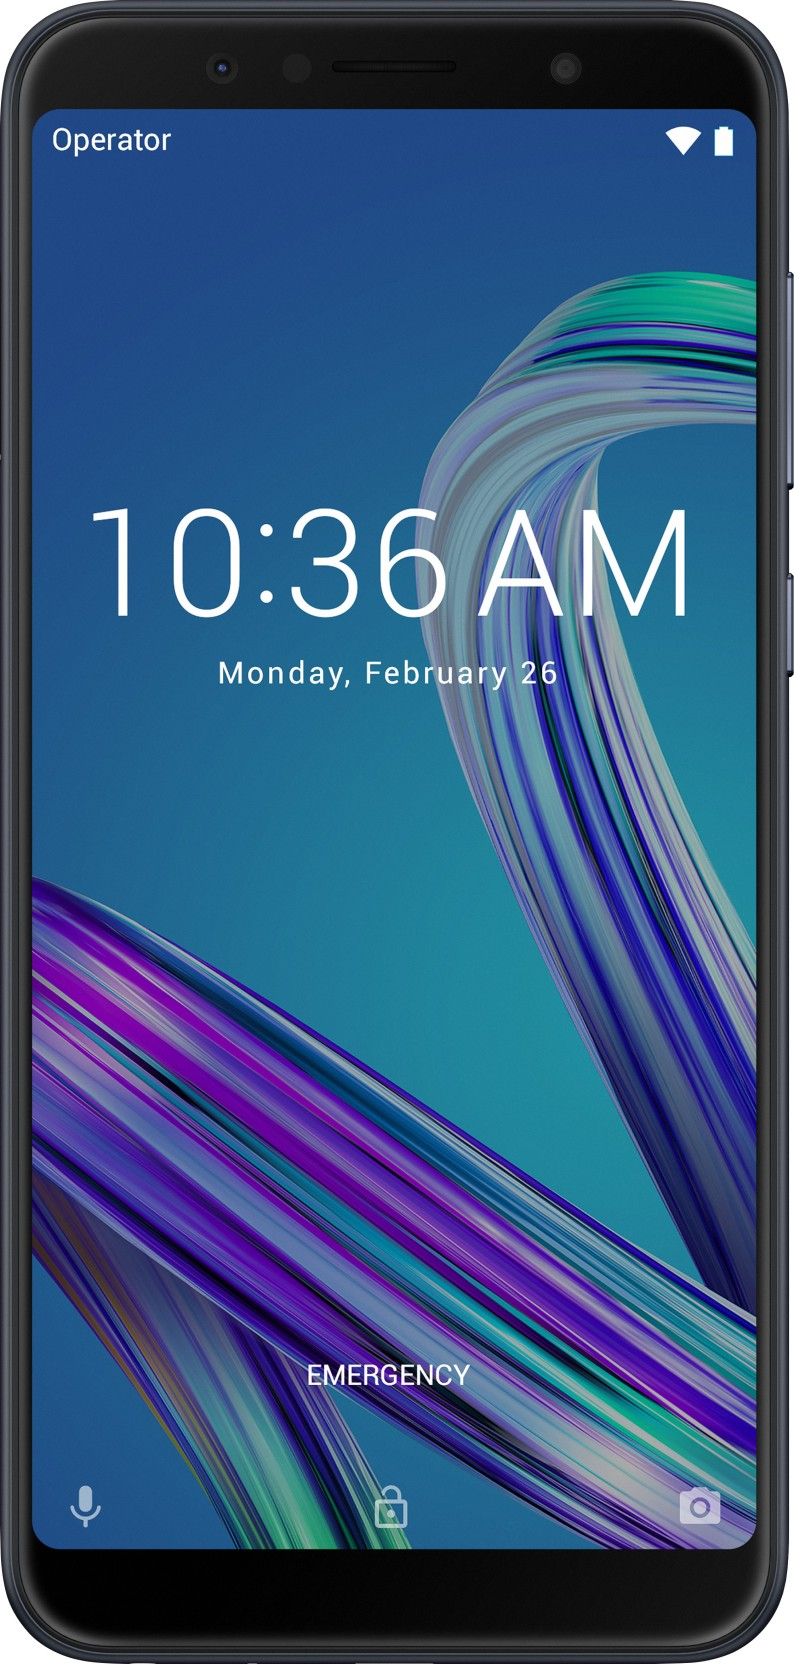 Asus Zenfone Max Pro M1 Black 64 Gb Online At Best Price Only On Headset Bluetooth Professional Samsung Sony Xiaomi Oppo Lenovo Vivo Add To Cart